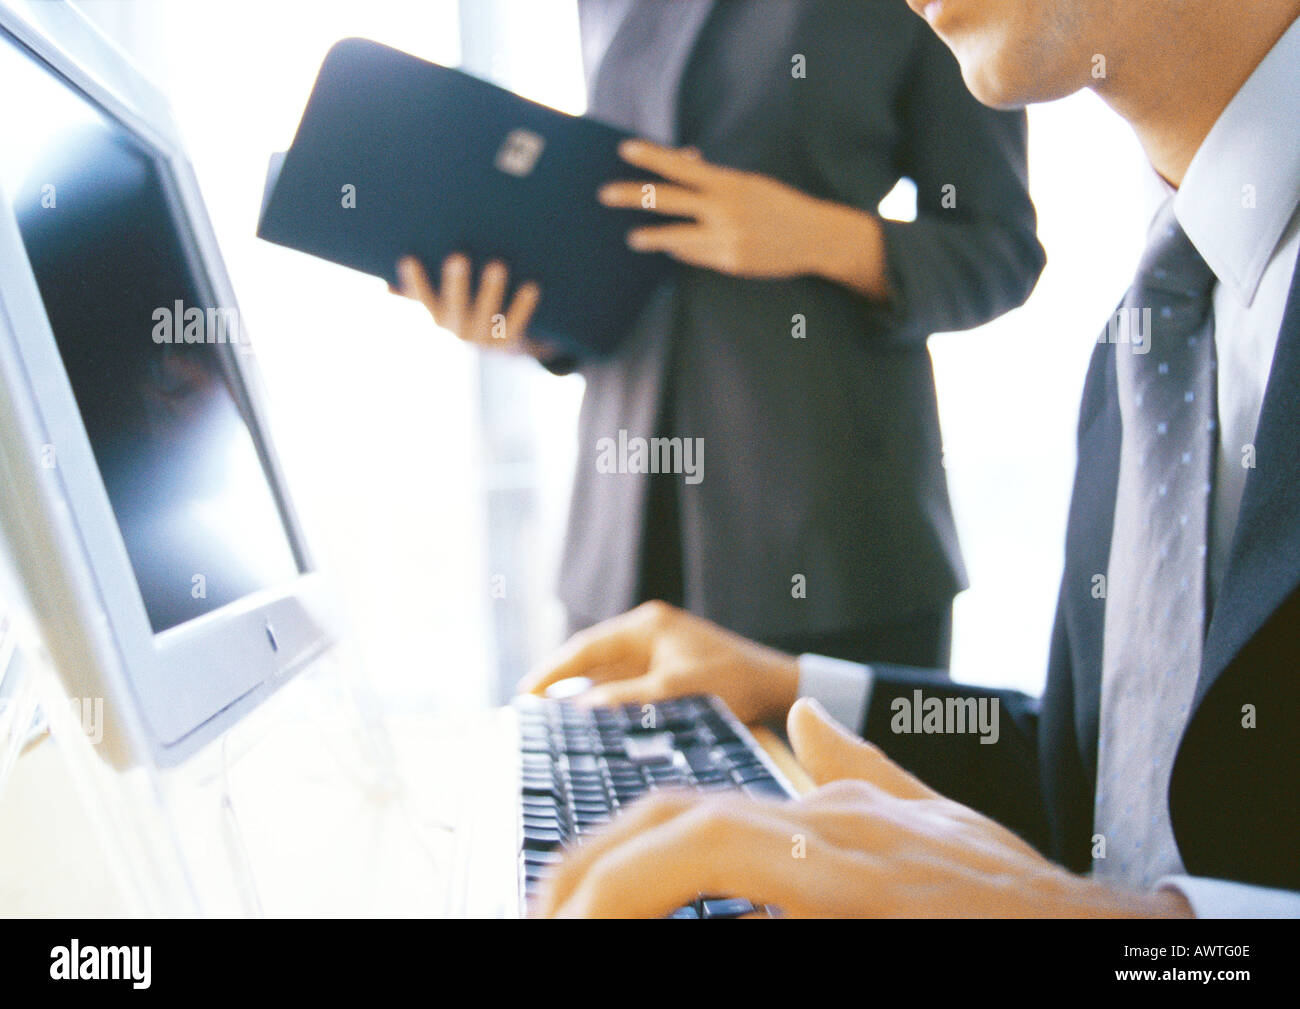 Businesswoman standing near businessman using computer, partial view - Stock Image